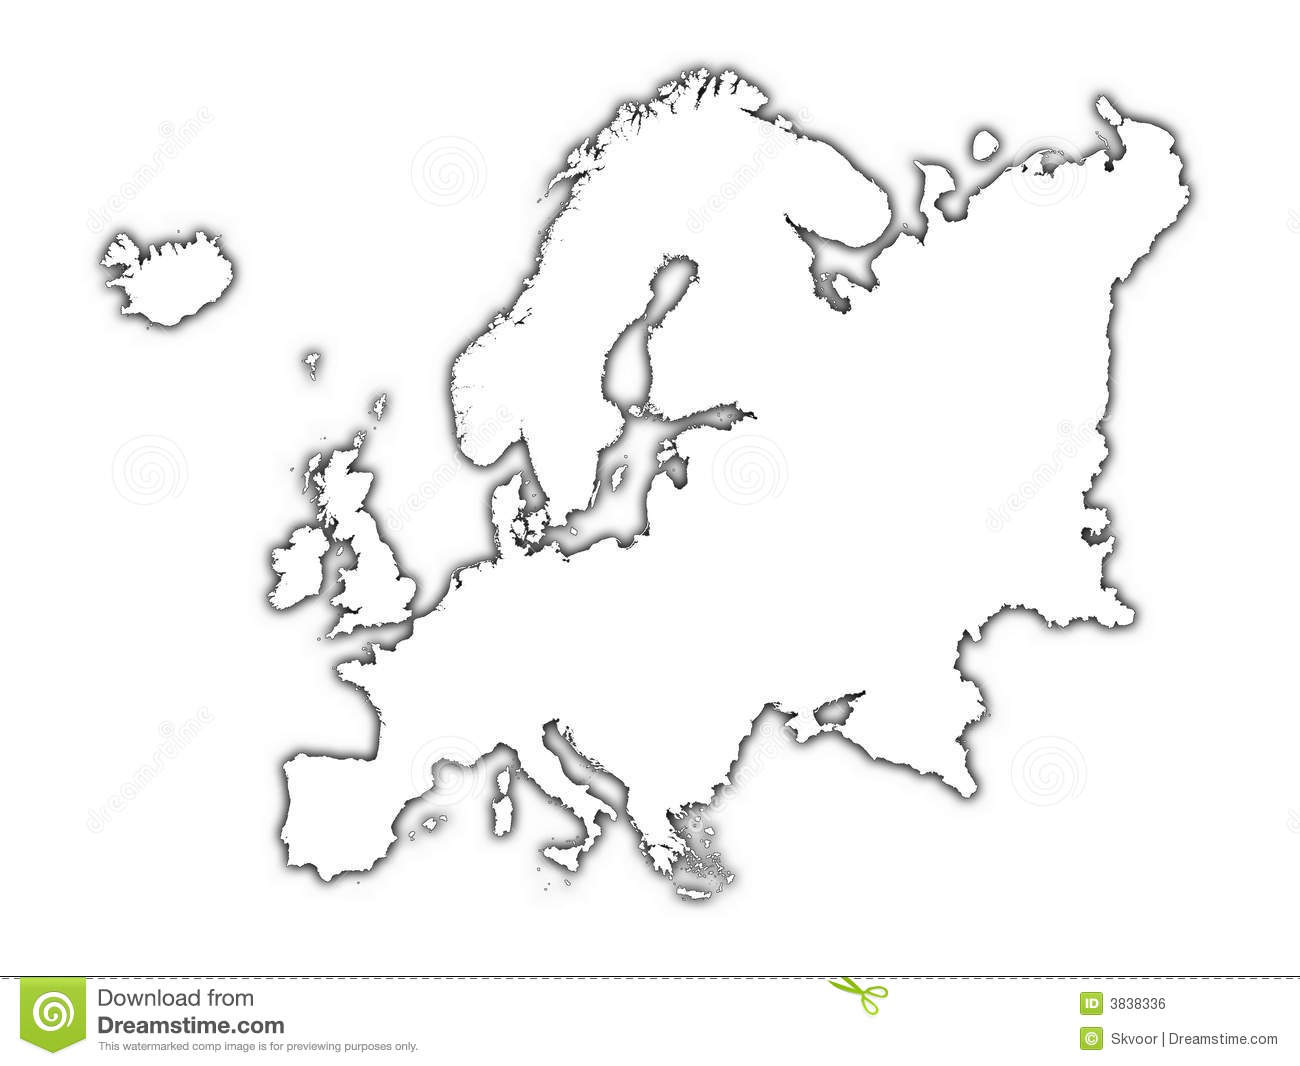 Europe Map Shapefile Download - sevenfestival